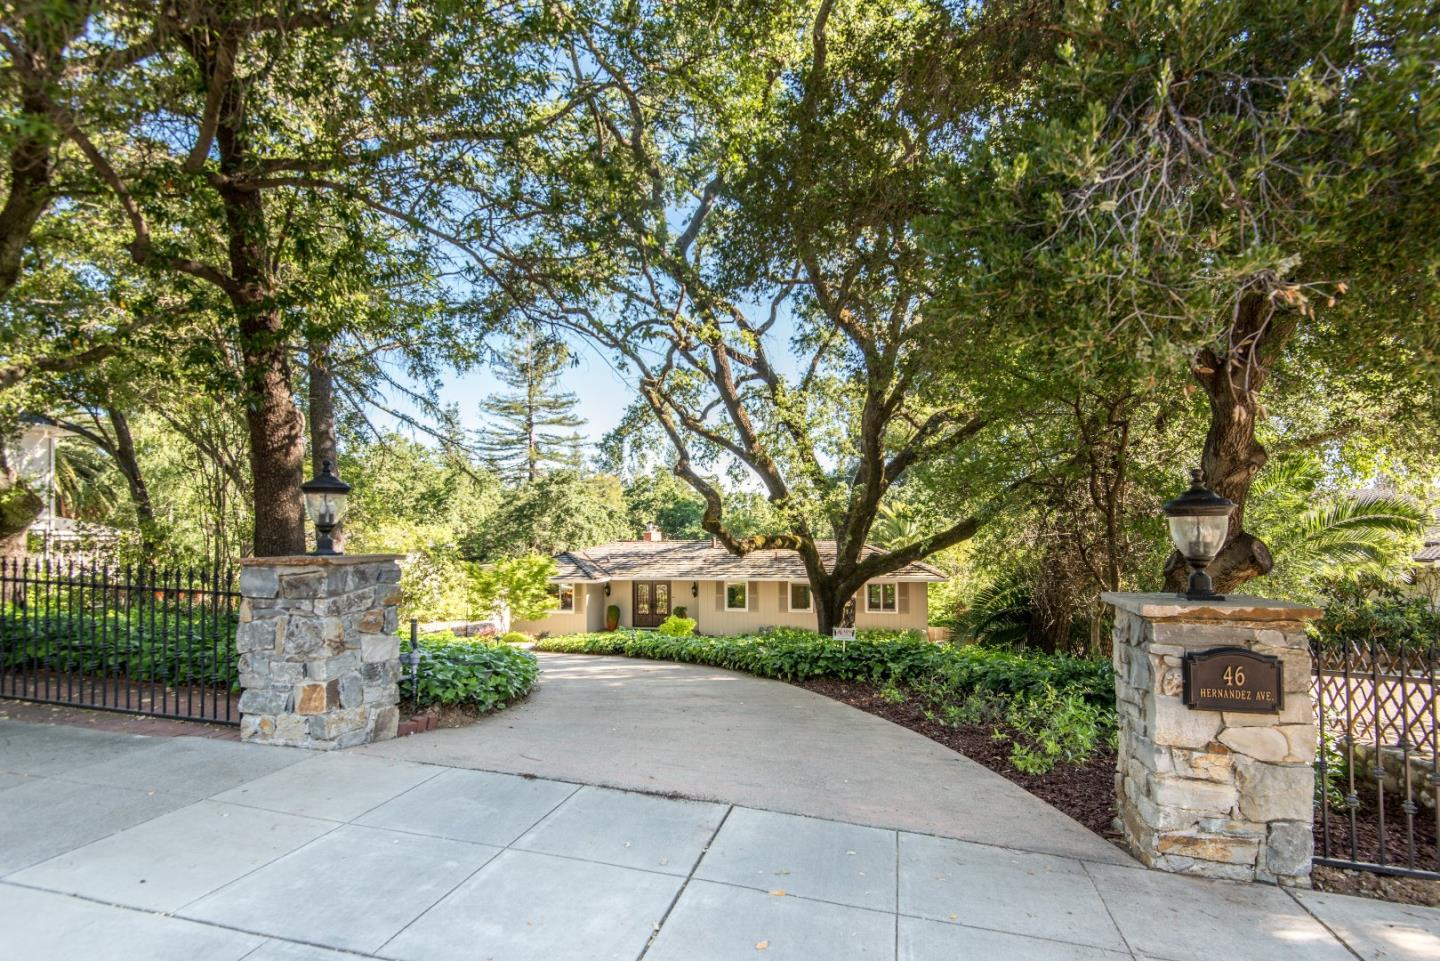 Additional photo for property listing at 46 Hernandez Ave  LOS GATOS, CALIFORNIA 95030